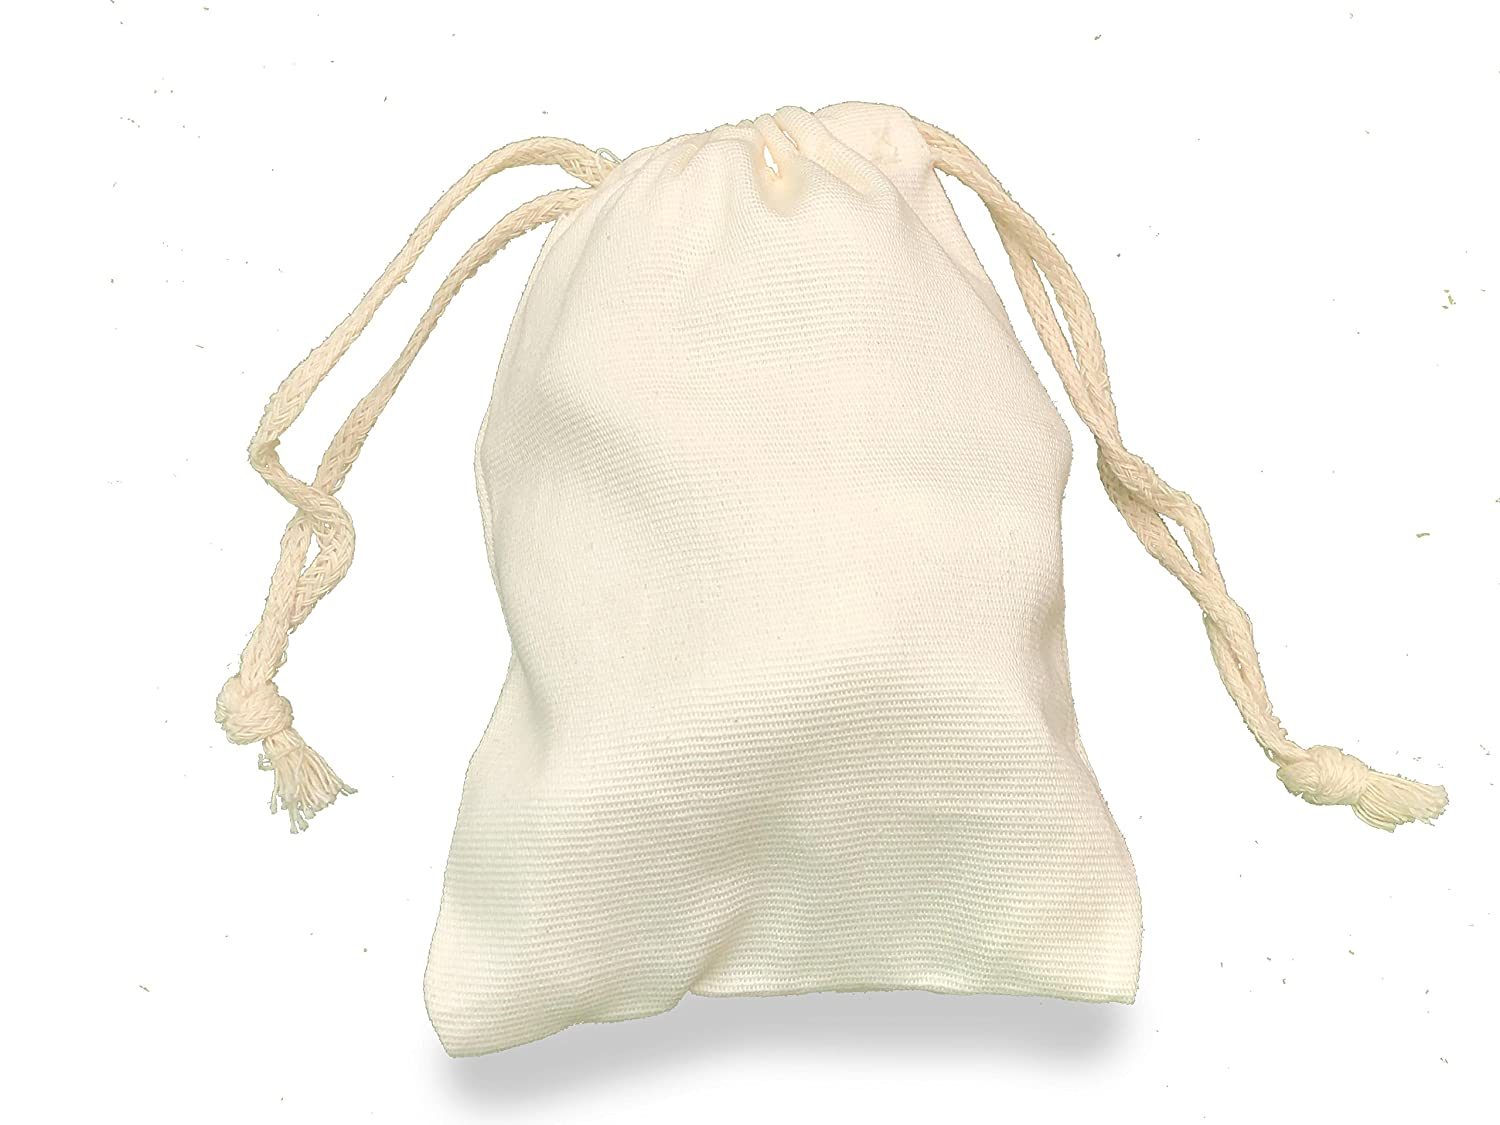 dad3043a20d Amazon.com: 12x18 inches 100% Organic Cotton CANVAS Double Drawstring  Muslin Bags Natural Color,Highly Durable and Recyclable Fabric, QTY-200:  Kitchen & ...